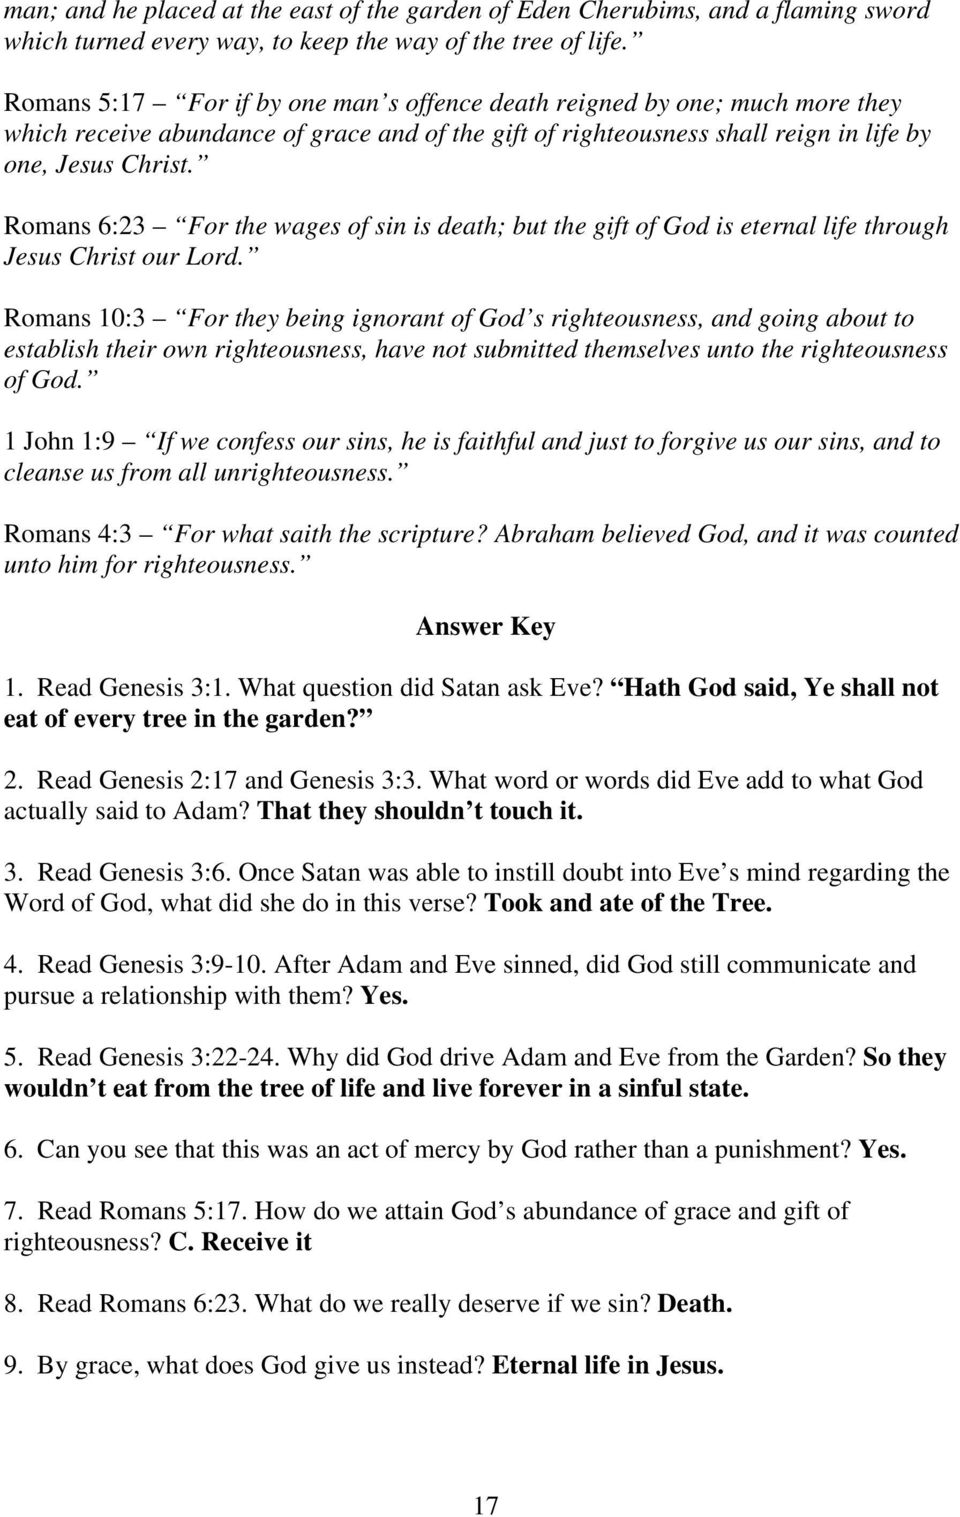 Level 1 Lesson 4  RELATIONSHIP WITH GOD By Andrew Wommack - PDF